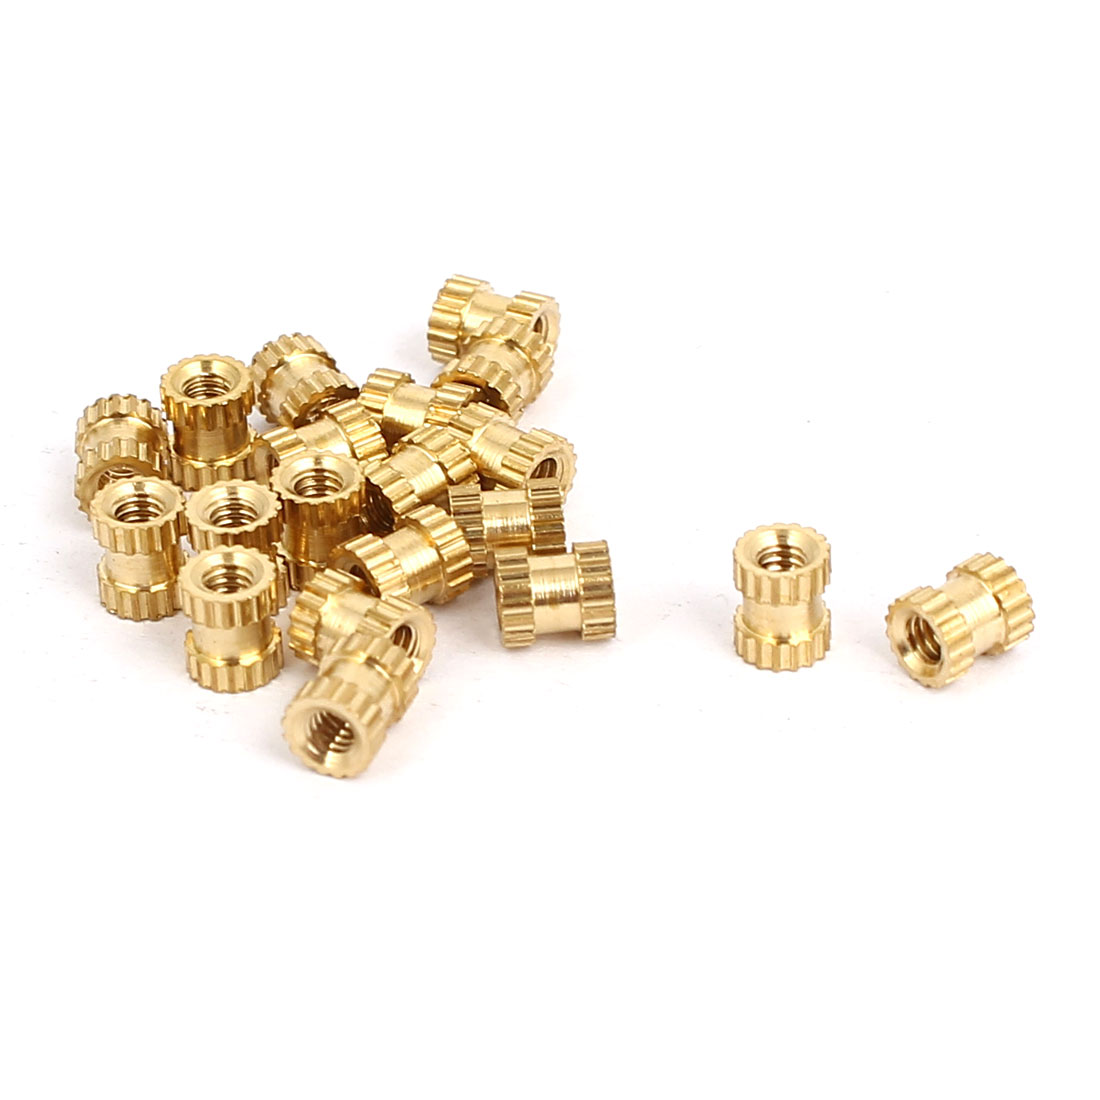 M2x4mmx3.5mm Brass Knurled Threaded Nut Insert Embedded Nuts Gold Tone 20pcs